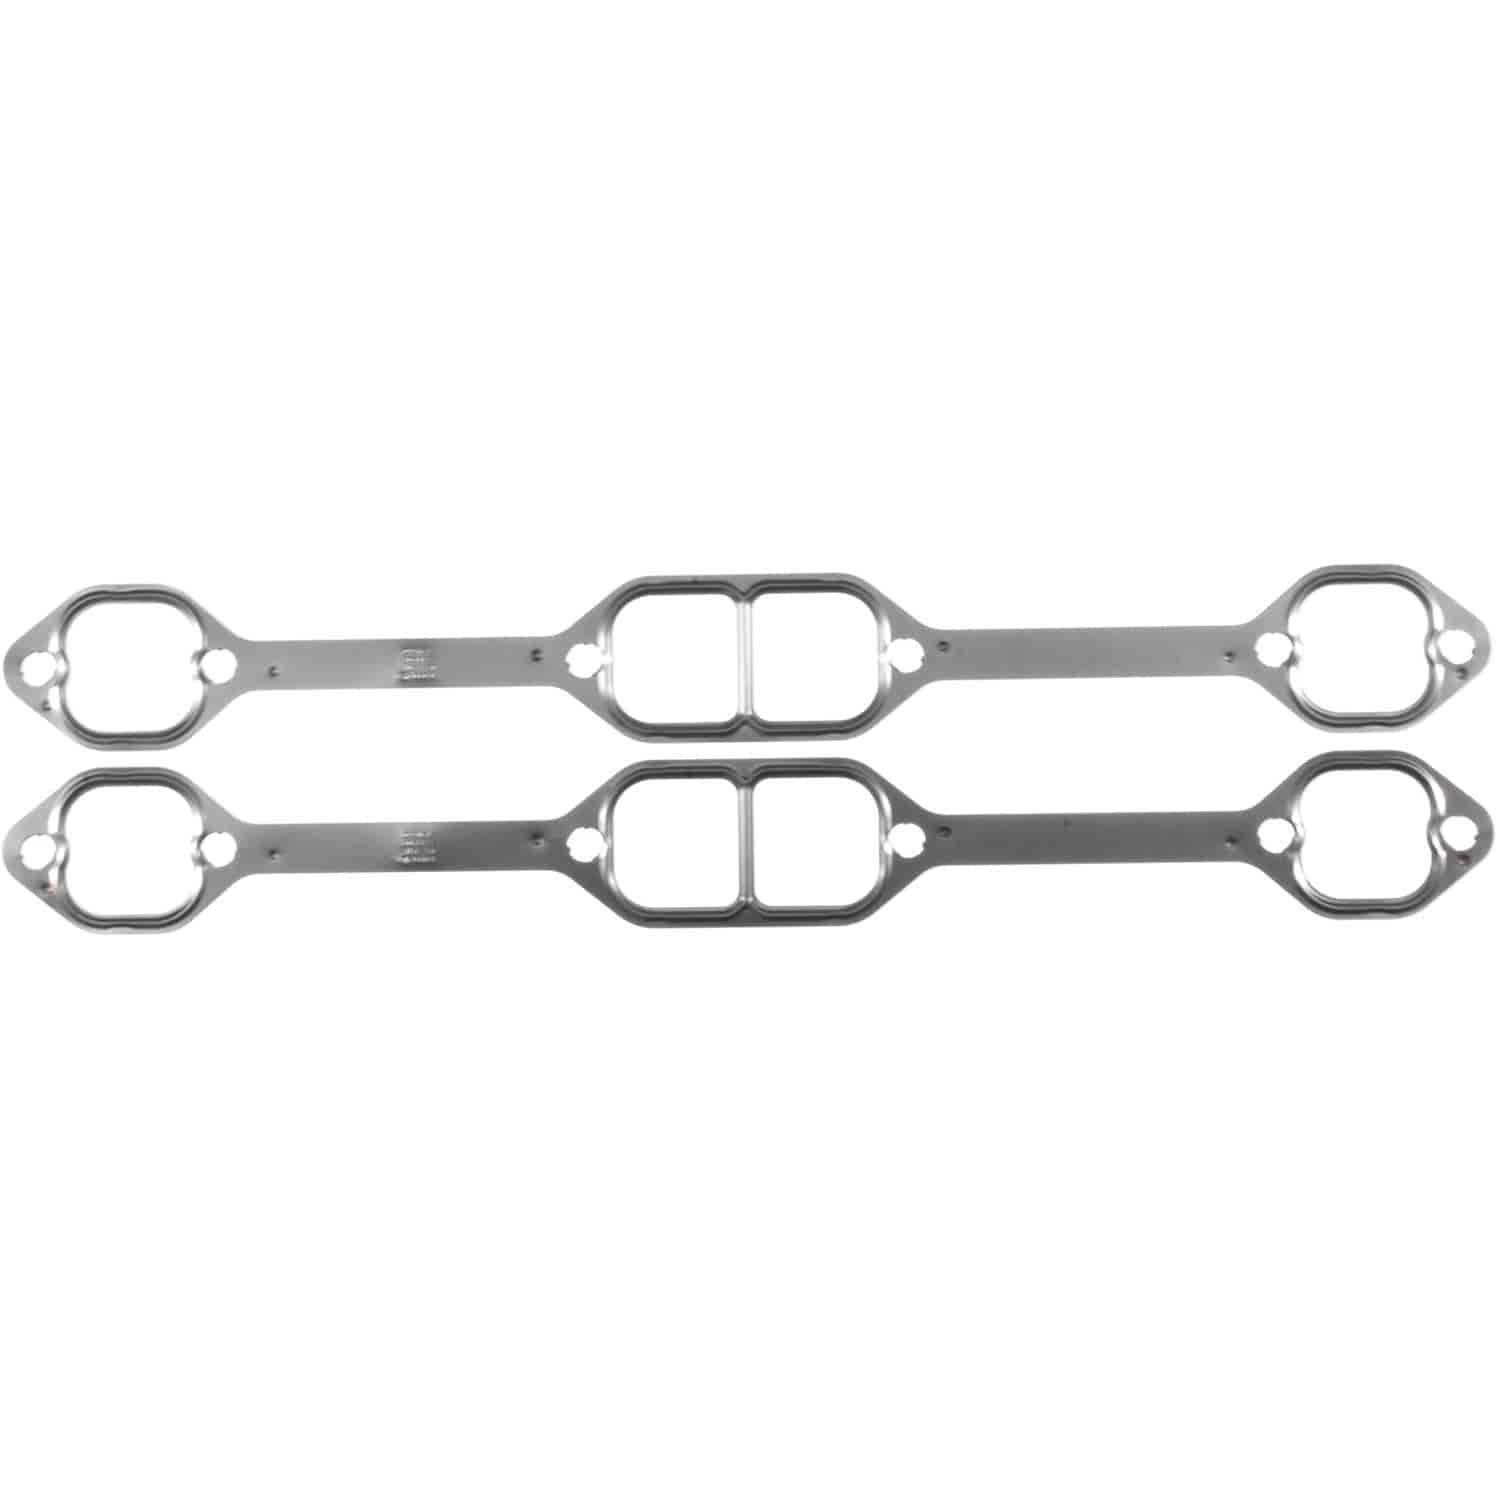 Clevite MAHLE Exhaust Manifold Gasket Set 1996-2002 Small Block Chevy  Vortec V8 305/350 (5 0/5 7L)